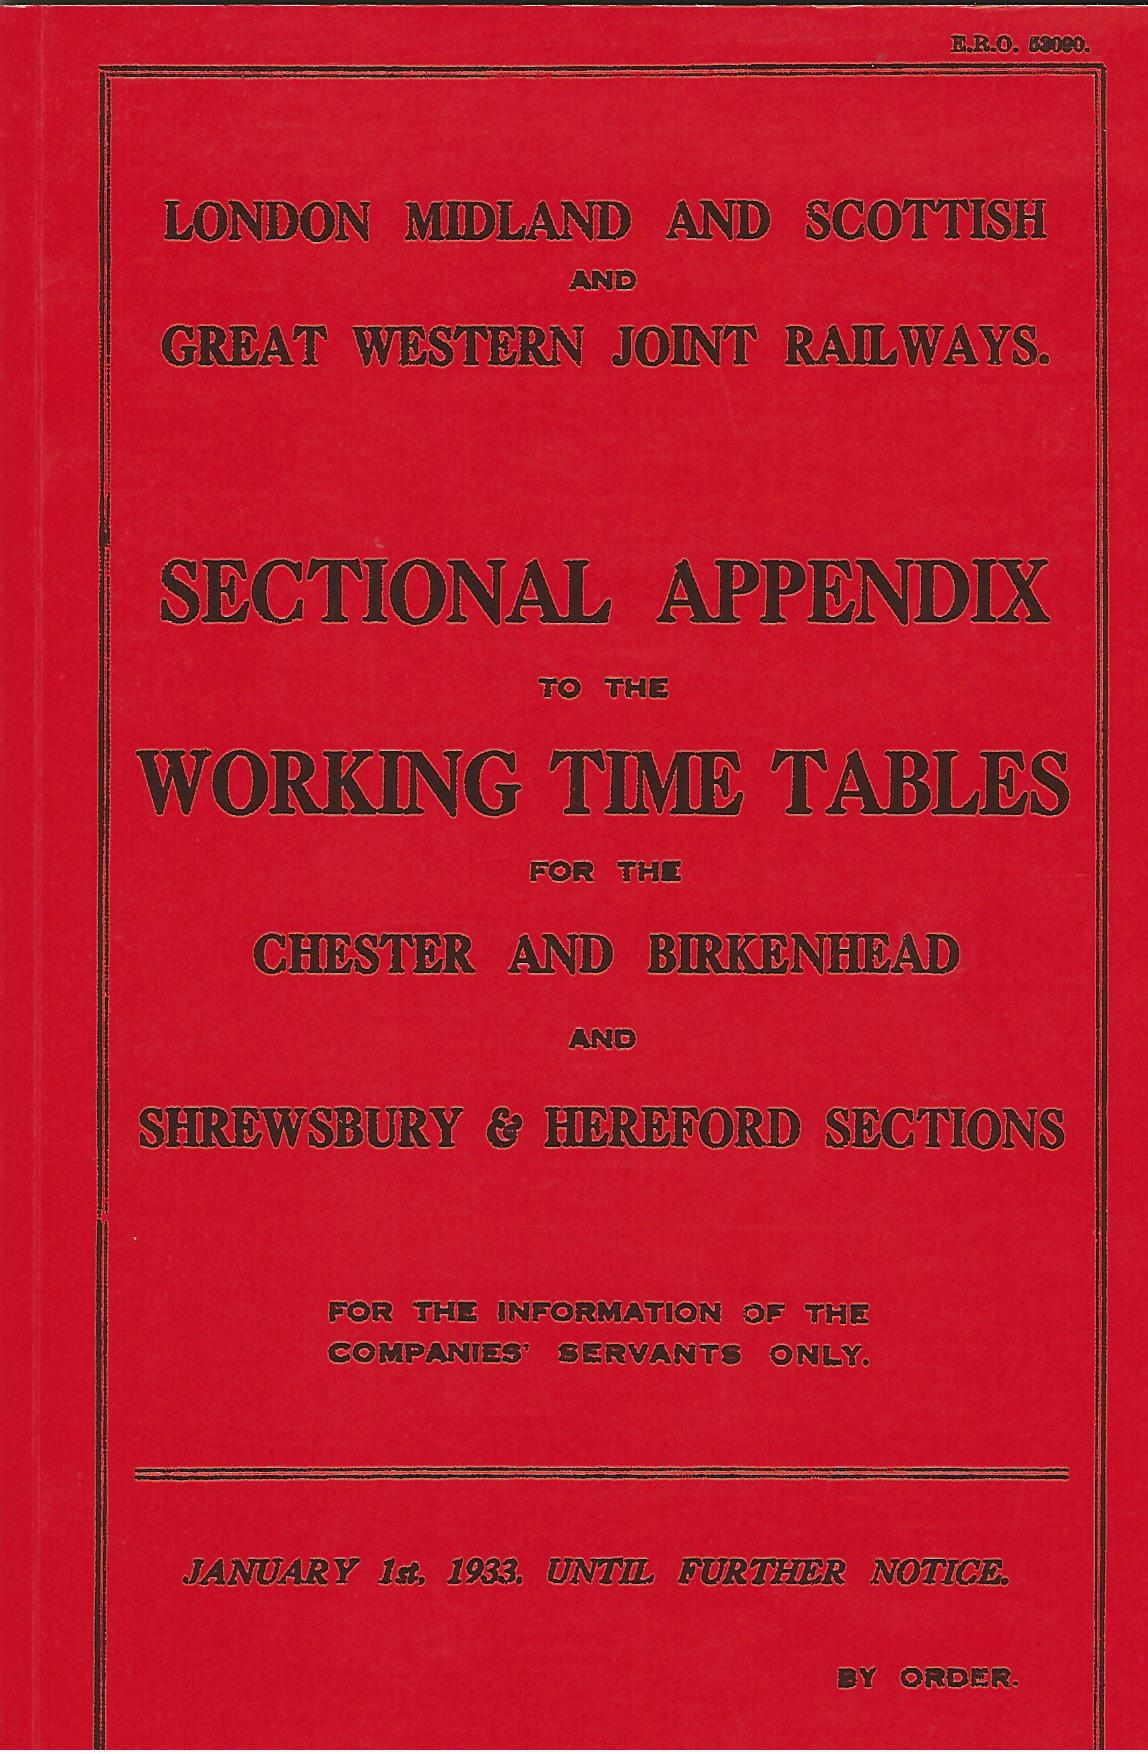 Image for London, Midland and Scottish and Great Western Joint Railways: Sectional Appendix to the Working Time Table (Chester and Birkenhead AND Shrewsbury and Hereford Sections)